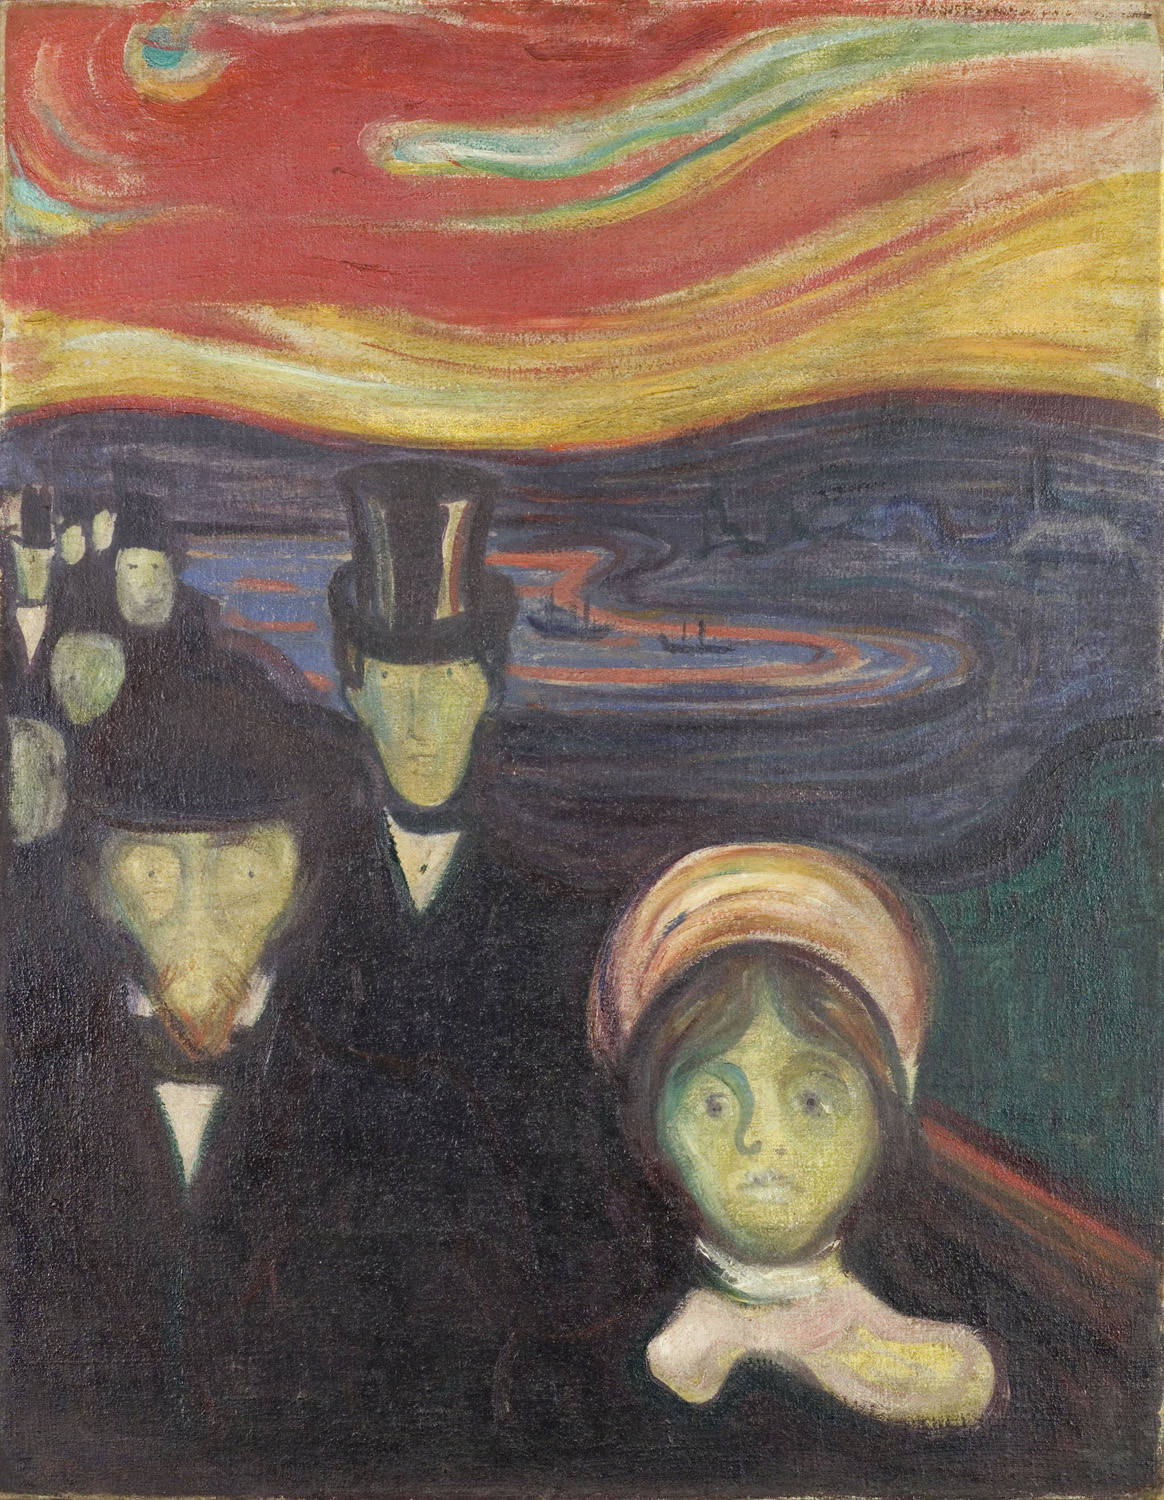 Edvard Munch, Anxiety, 1894.jpg